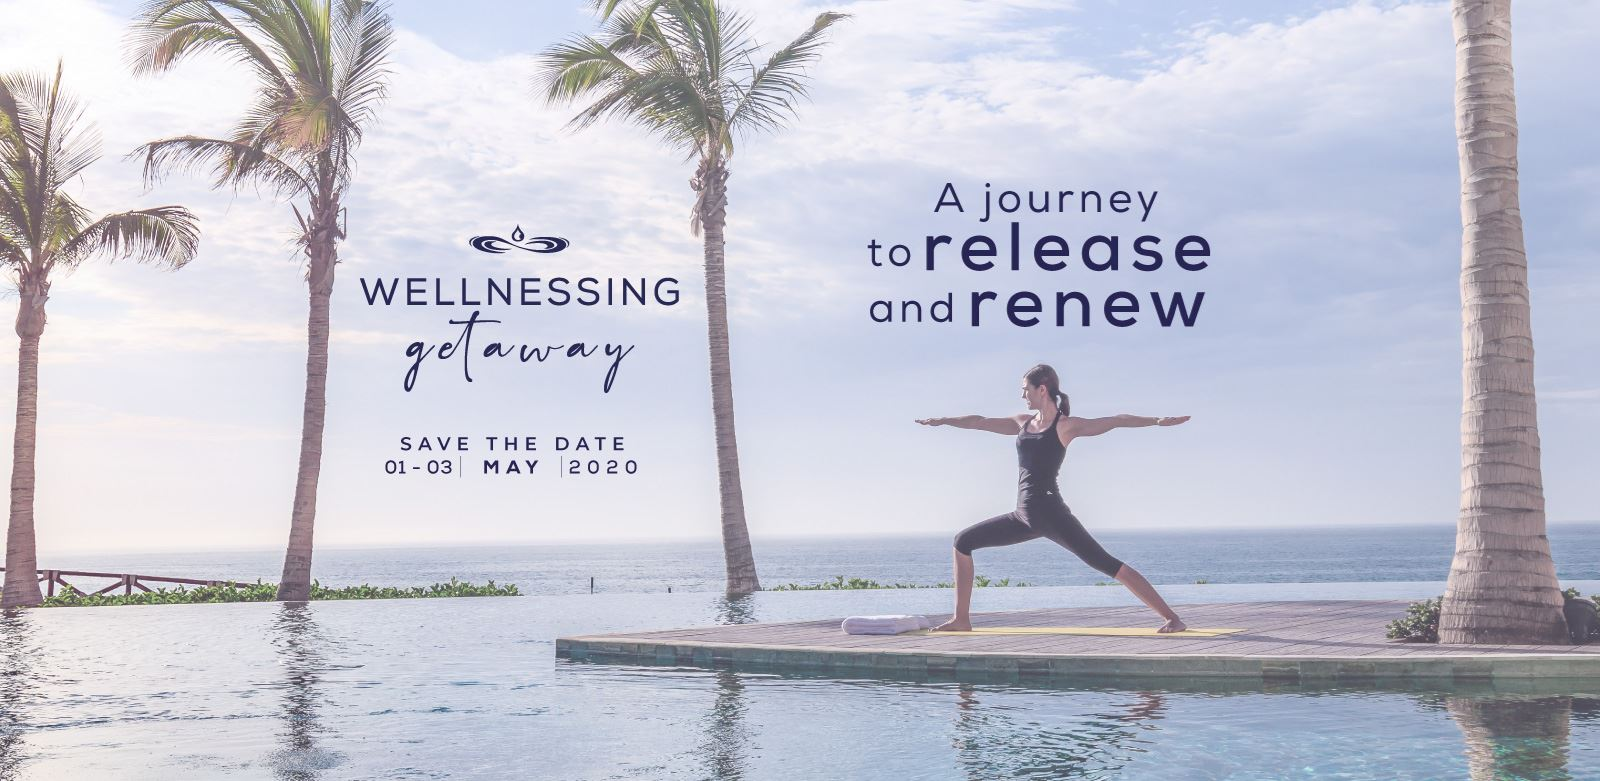 Wellnesing Getaway a journey to release and renew